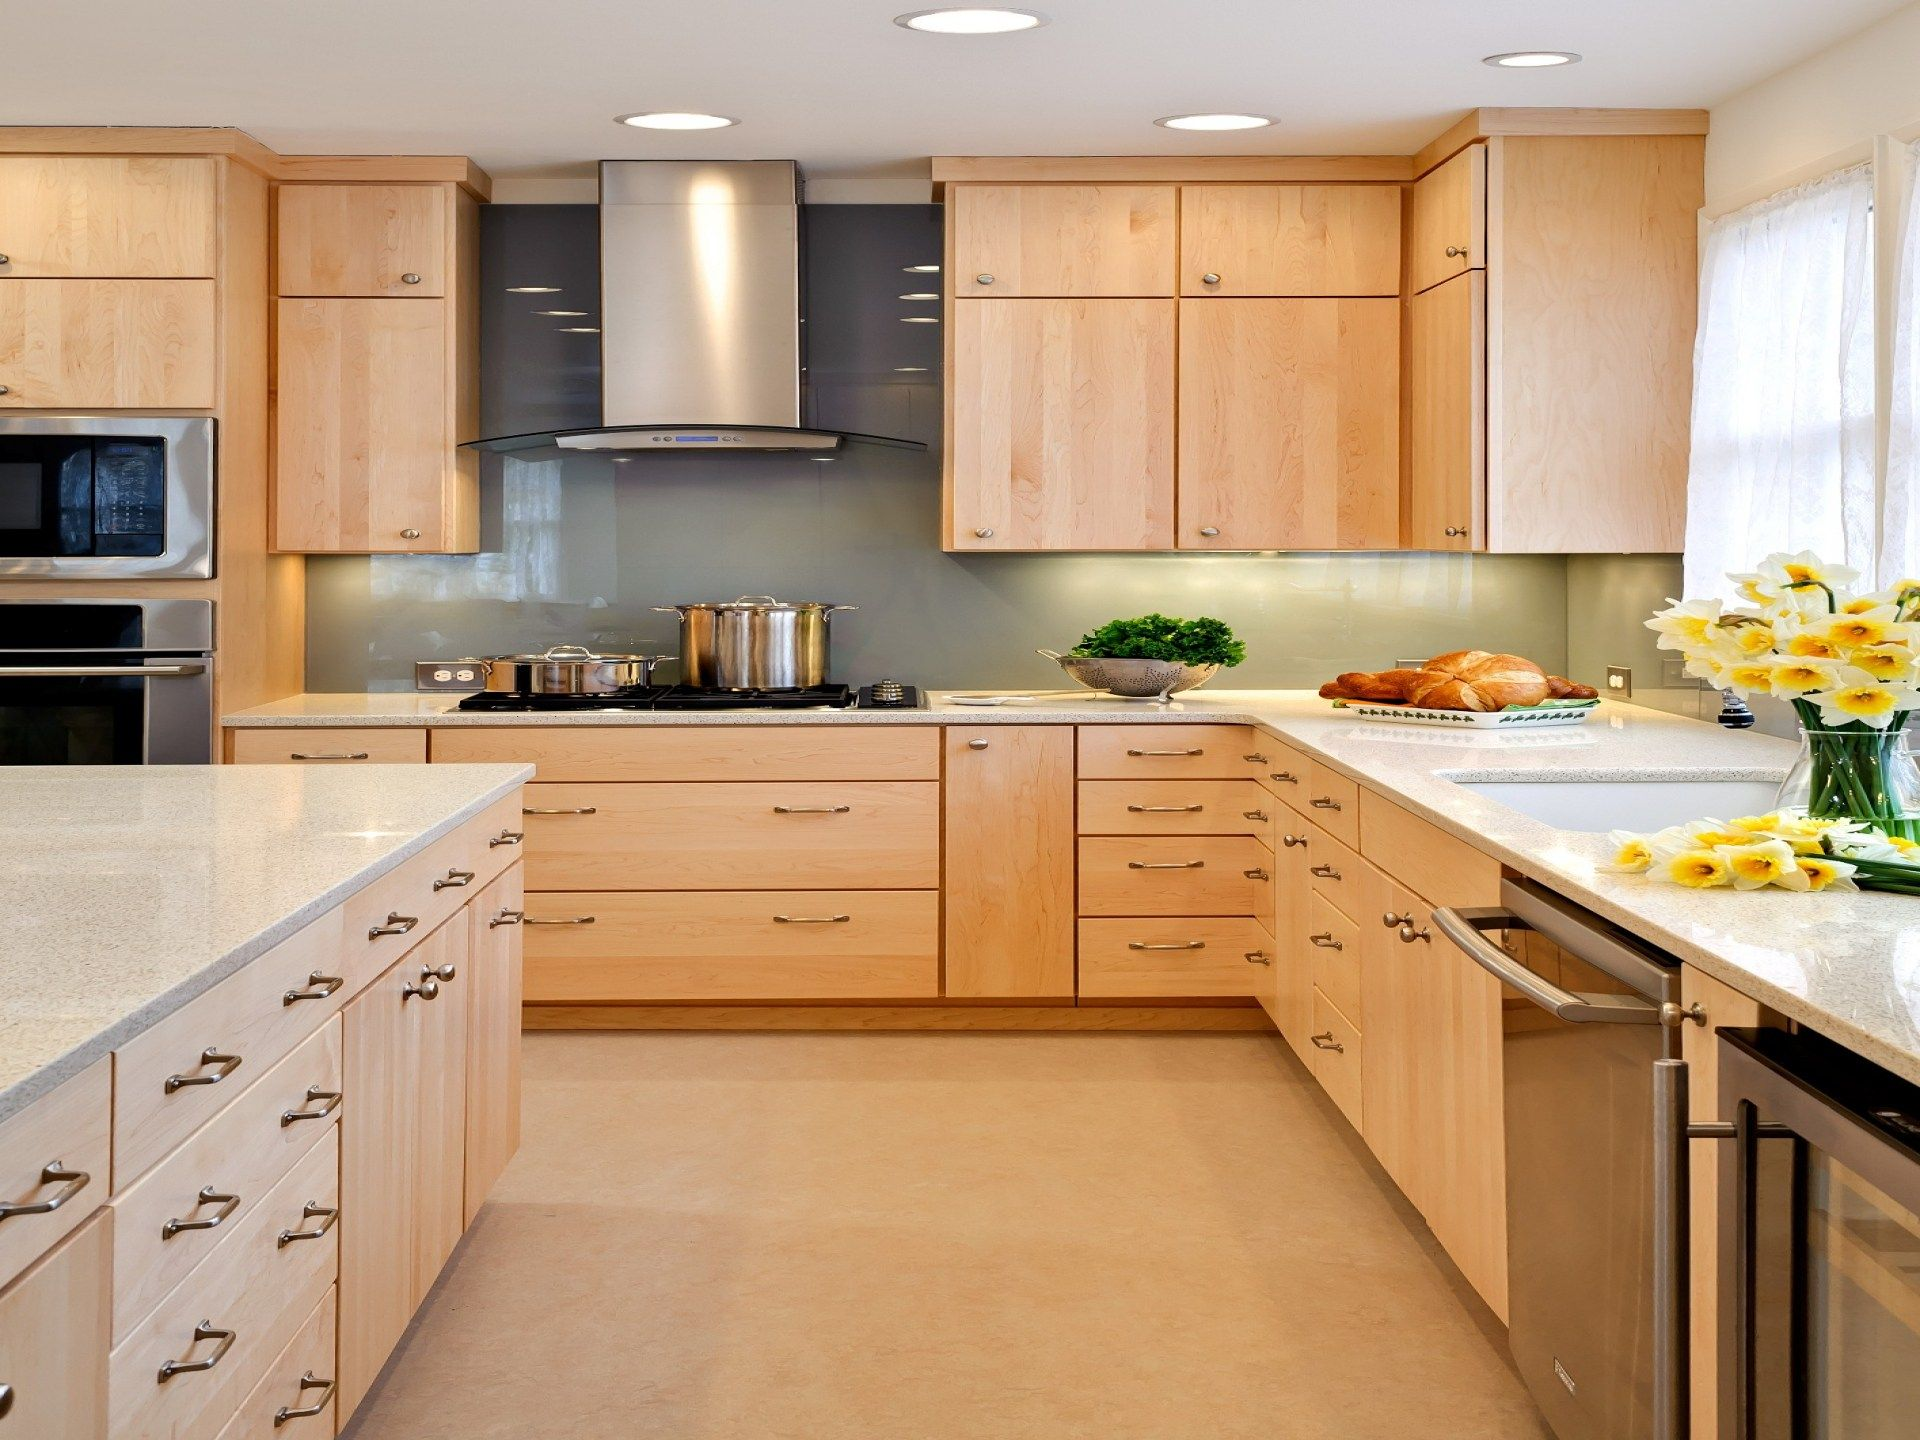 Kitchen Cabinets Modern Kitchen Cabinet Design Unfinished Kitchen Cabinet Philad Birch Kitchen Cabinets Maple Kitchen Cabinets Kitchen Cabinets And Countertops